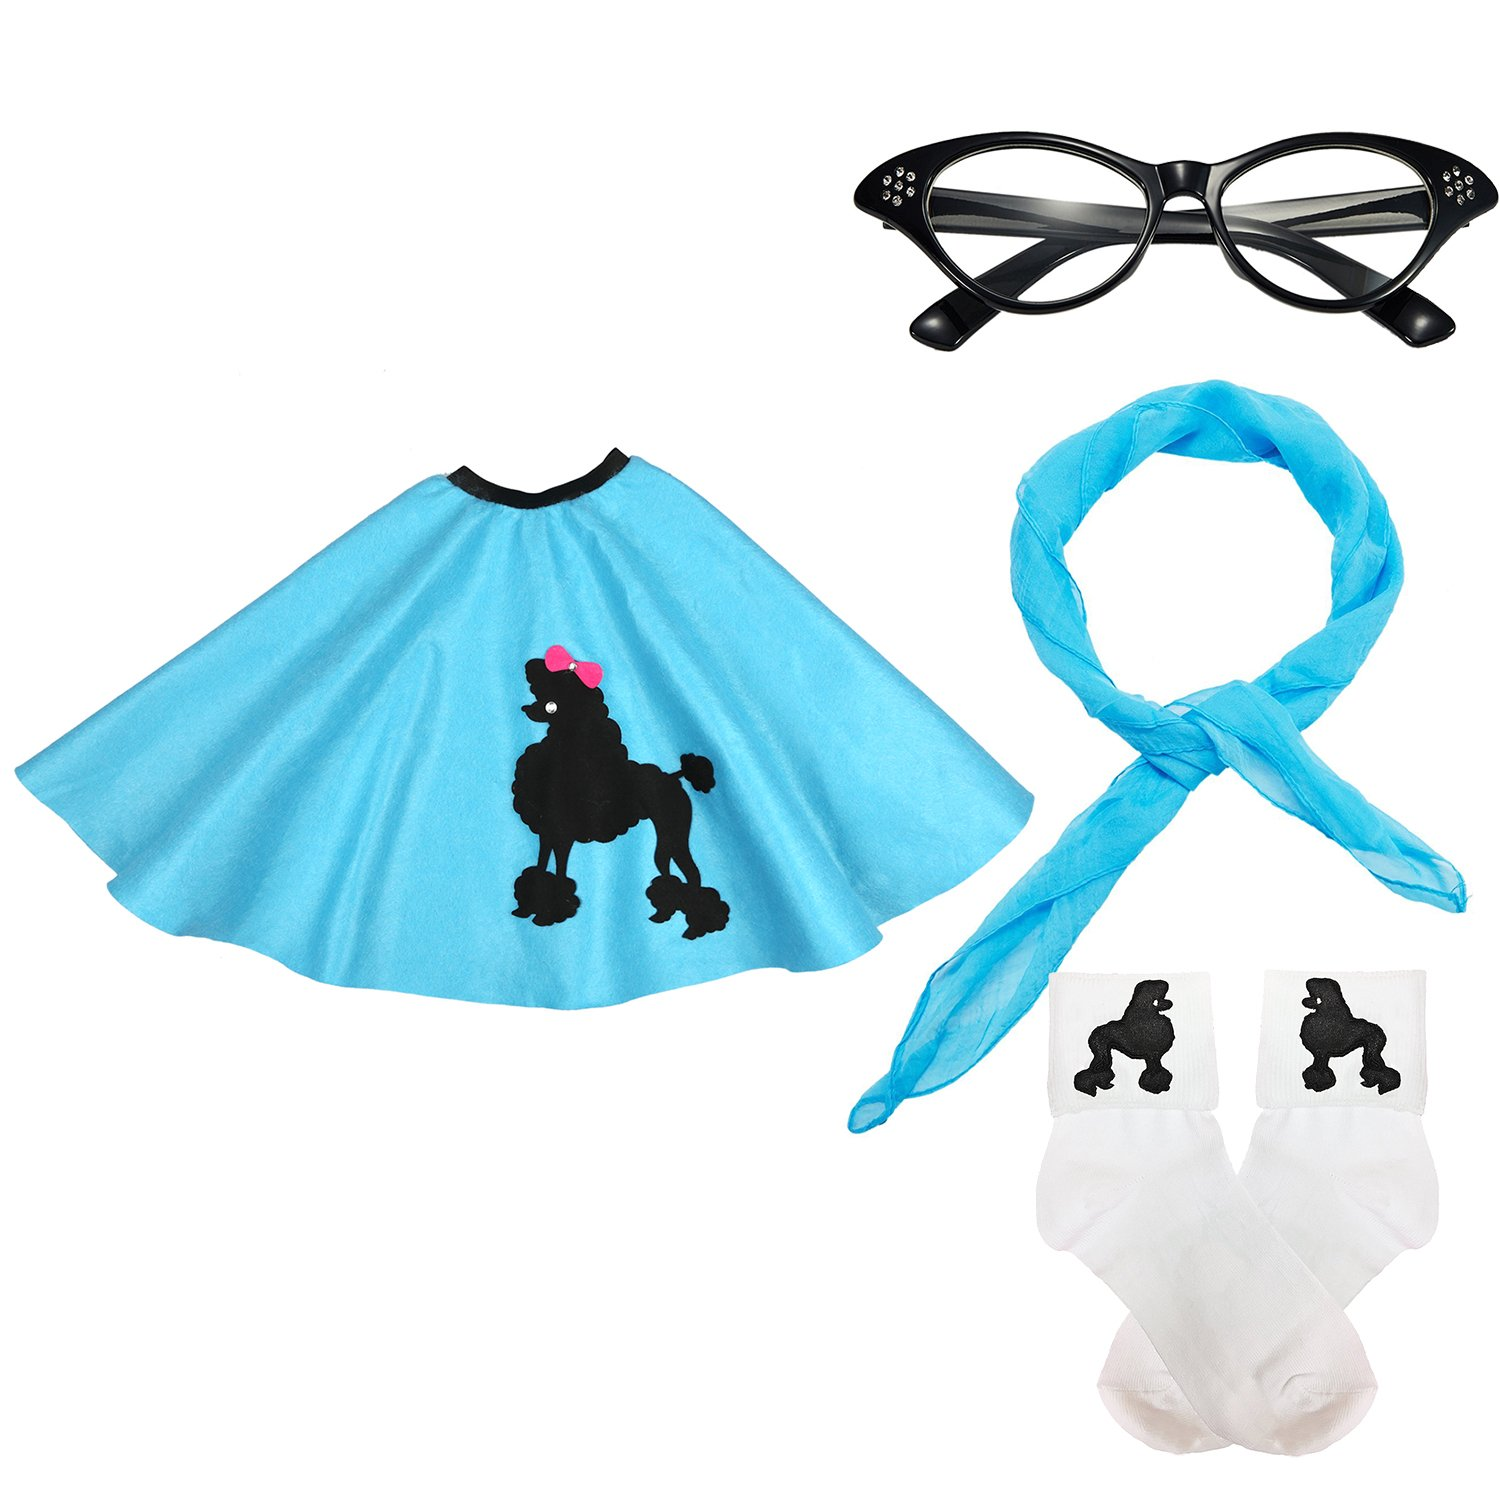 50s Girls Costume Accessory Set - Poodle Skirt, Chiffon Scarf, Cat Eye Glasses,Bobby Socks Blue QN50sSkirt-BL